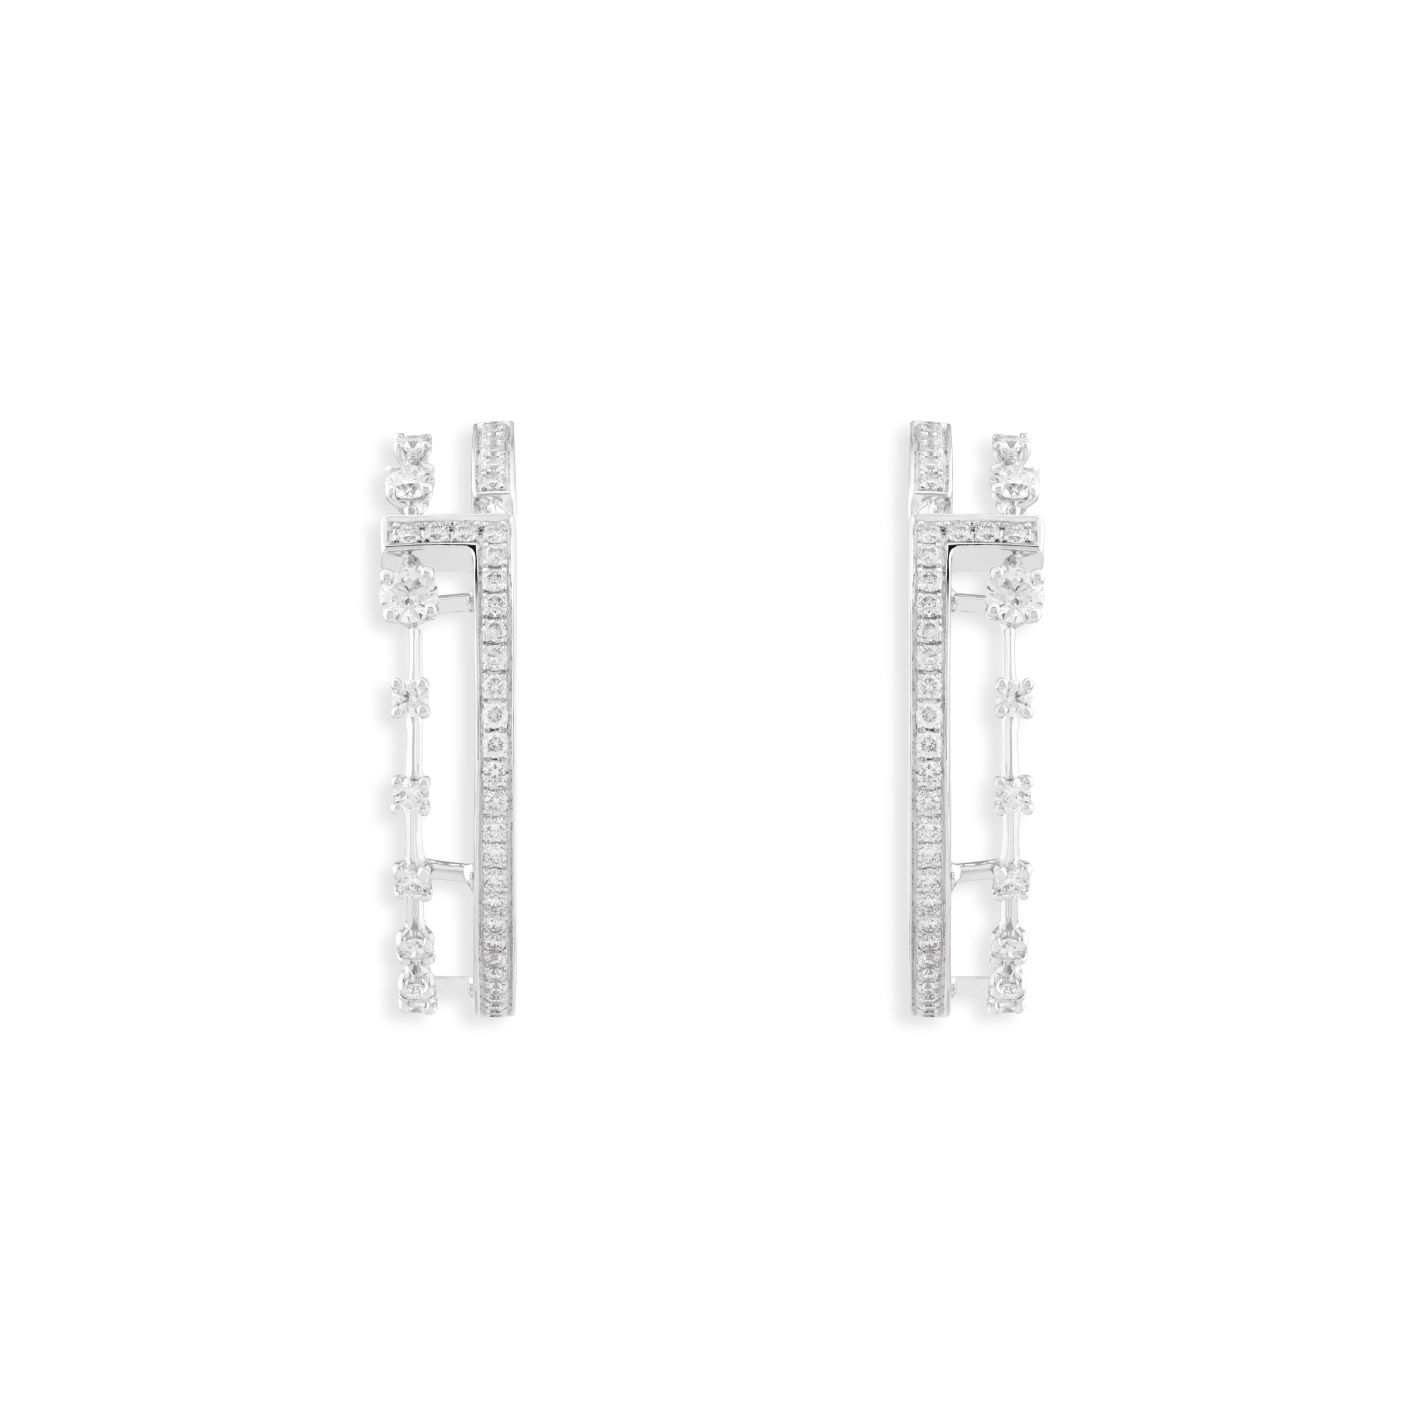 Avenues Hoop Earrings